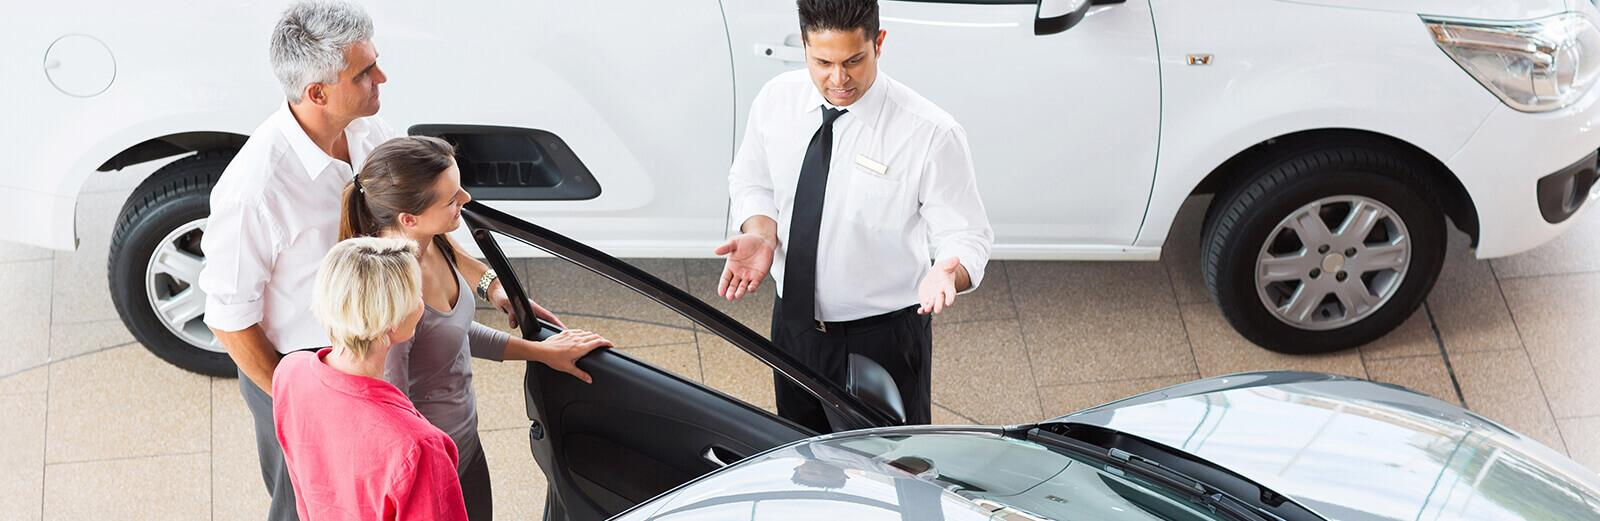 salesman with customers showing car